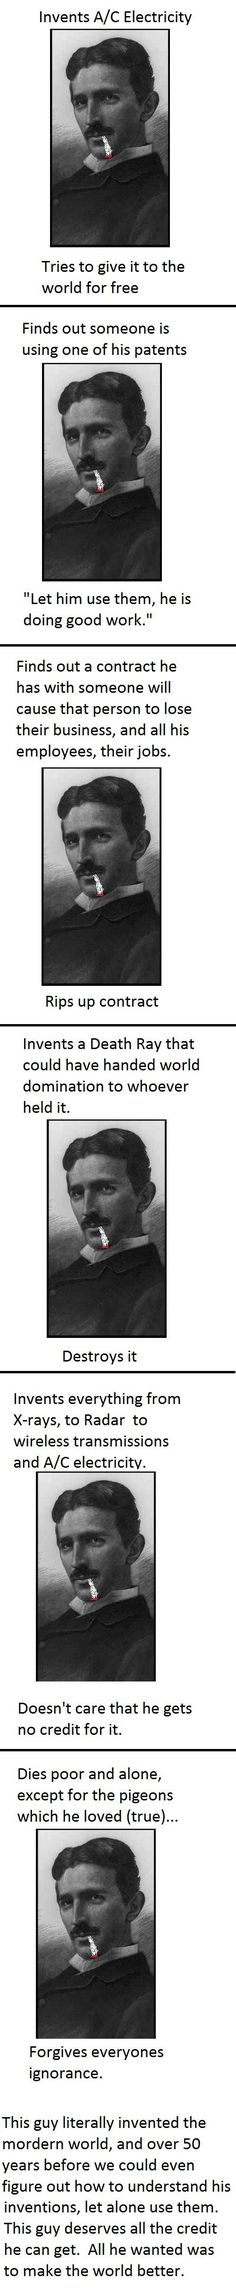 """Good Guy Tesla. Unfortunately, his """"death ray"""" technology has been in use for some time to torture and kill without leaving a trace. See Vic Livingston (On Human Rights) and Jesse Ventura's """"Death Ray"""" episode. In a strange twist inventor Dr. Fred Bell, who Jesse interviews on the segment, died under suspicious circumstances just after returning to his hotel after filming."""